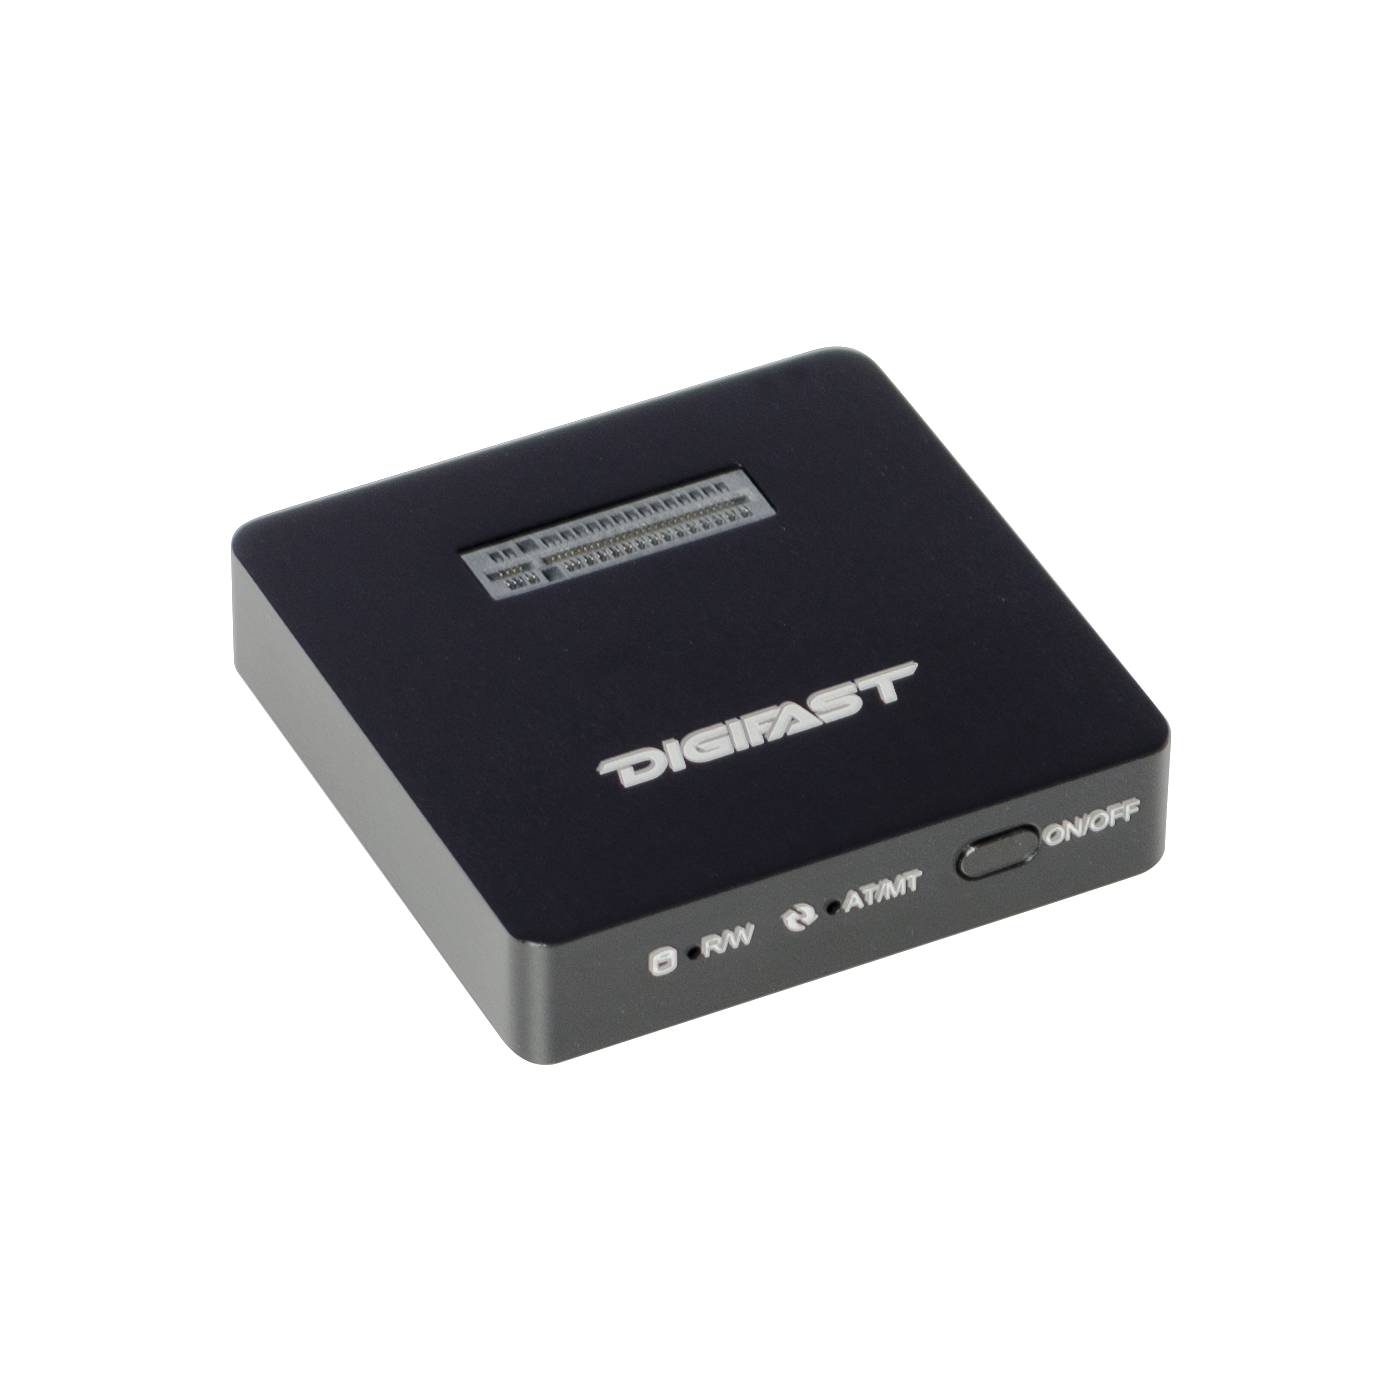 Digifast M.2 NVMe SSD Docking Base, USB3.2 GEN2 Type-C (10 Gbps), Lightweight, Portable Design - Black